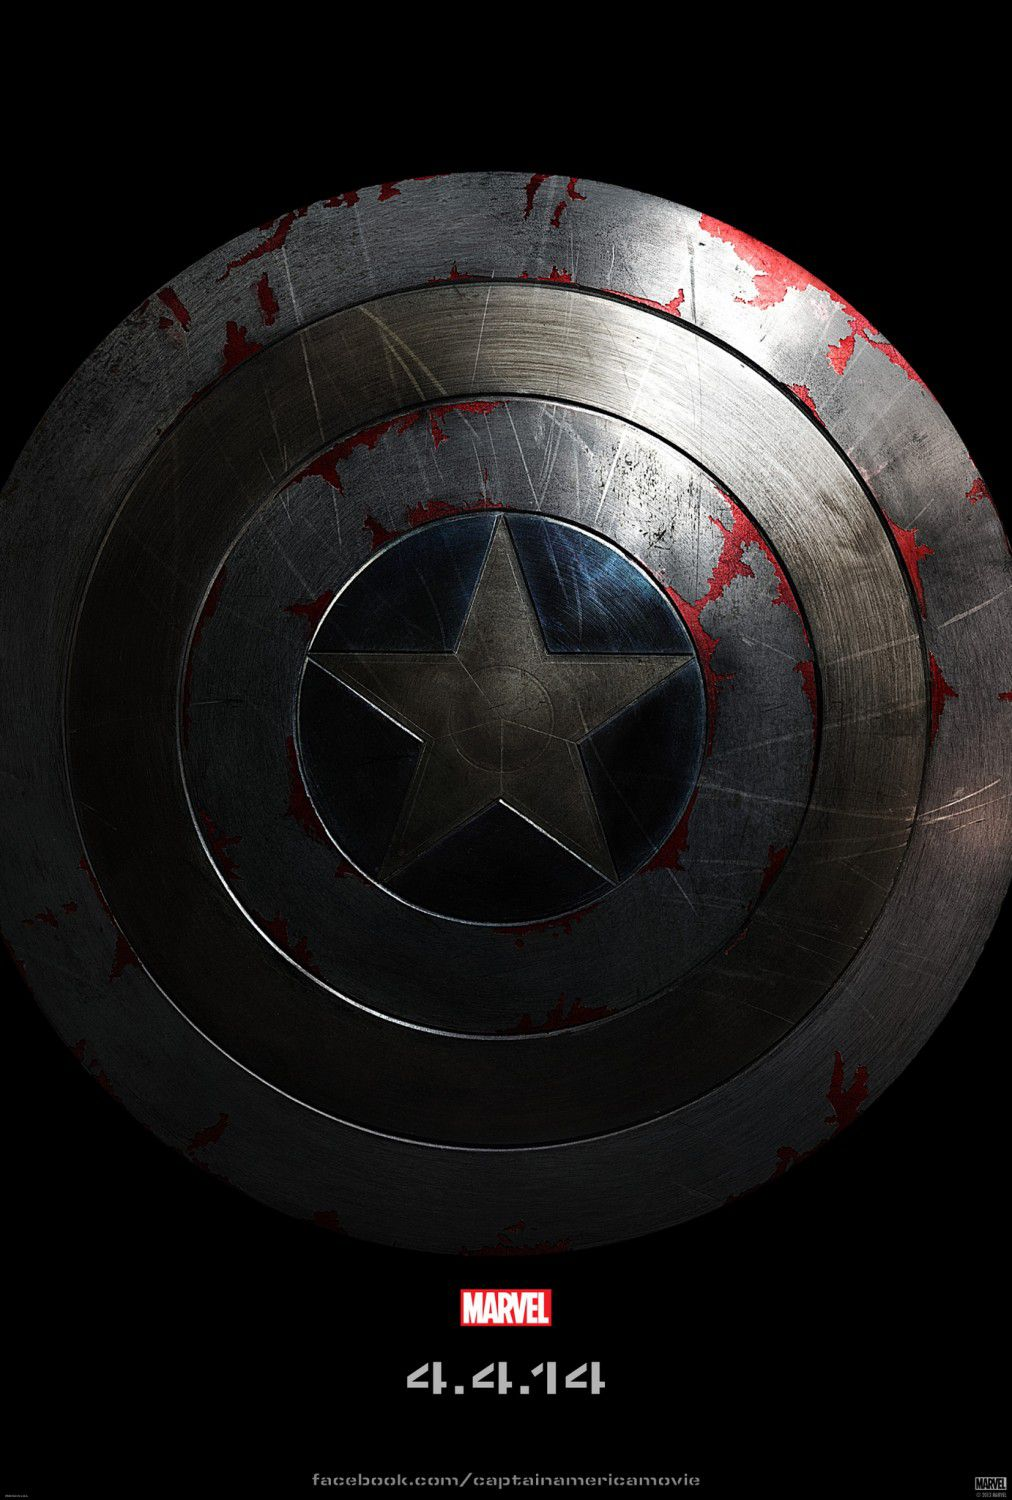 Captain America saga - list - elenco movie Capitan America - scudo - shield